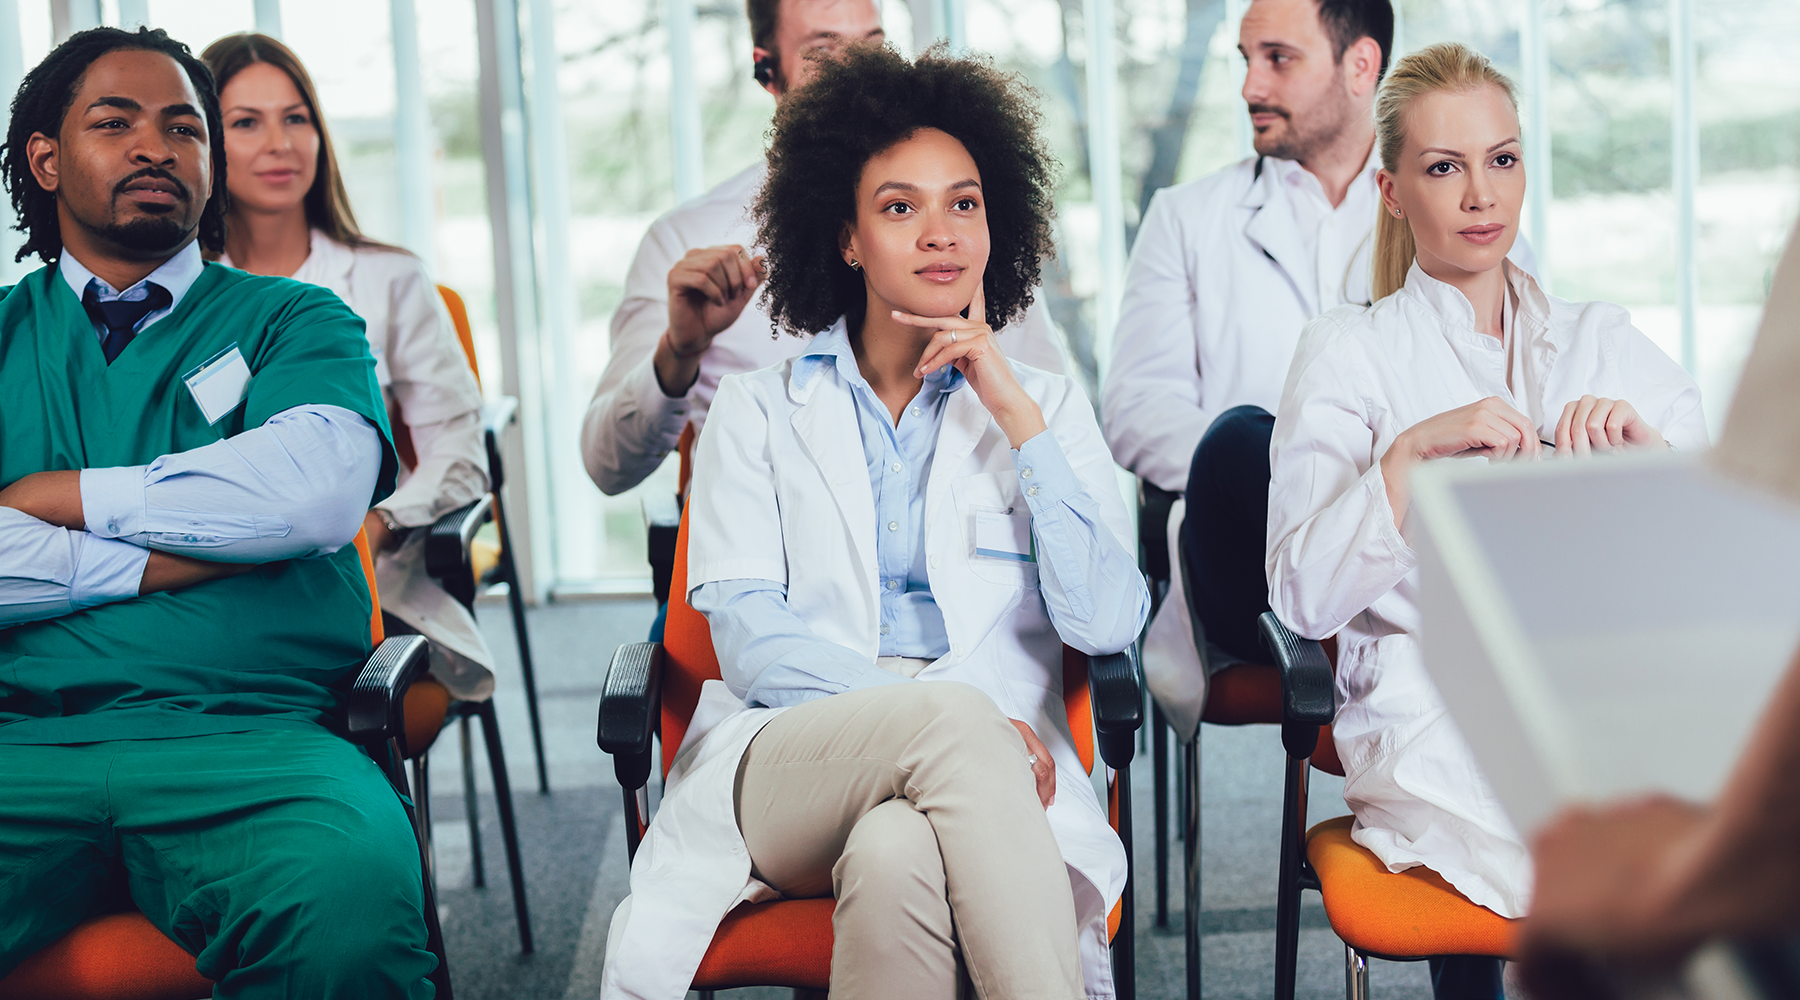 What Are the Best Upskilling Opportunities in Healthcare?